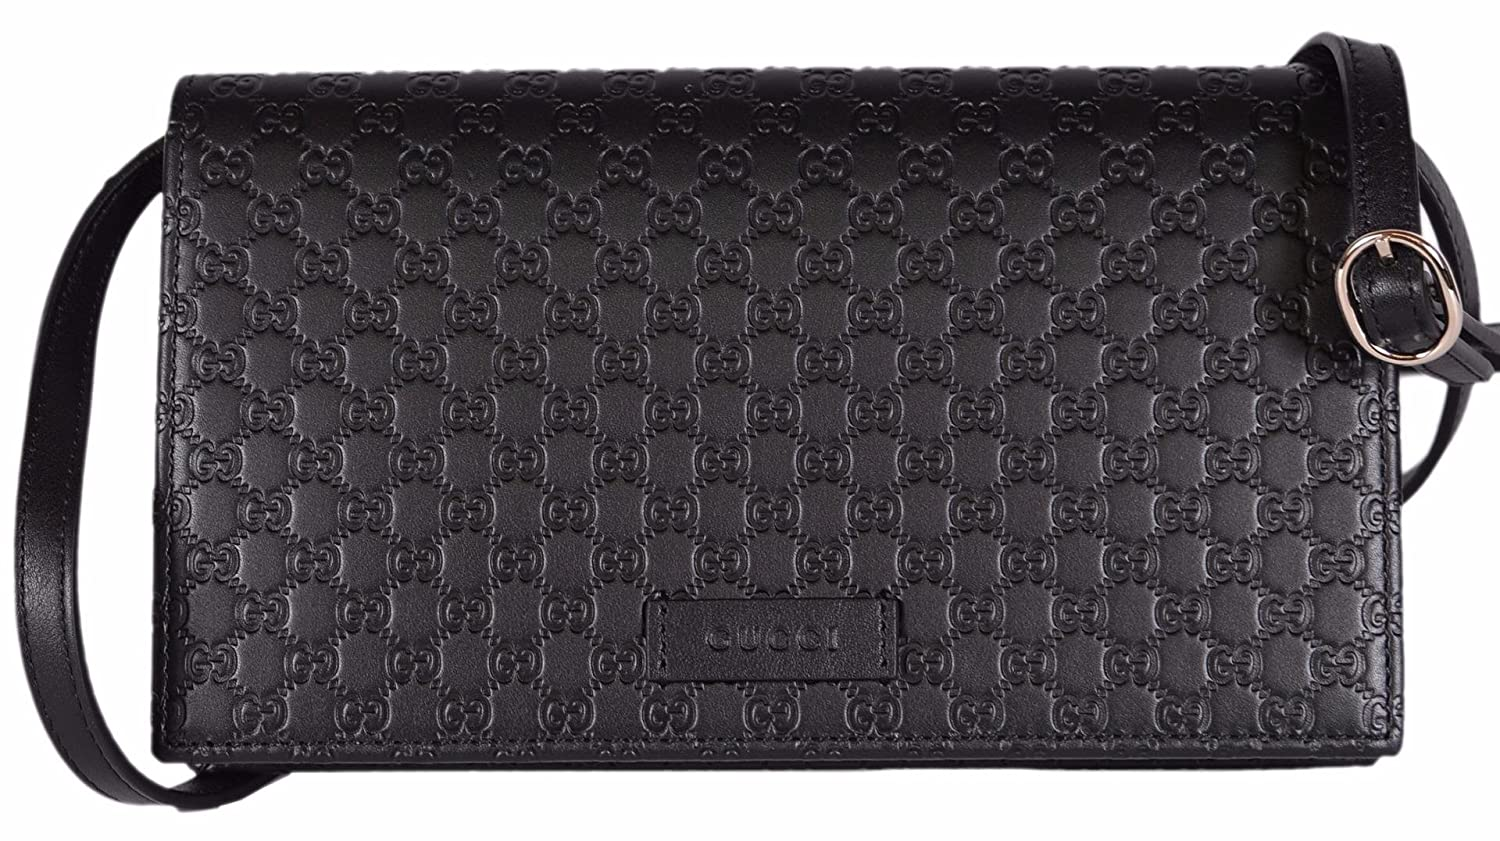 73d60f0d8065 Amazon.com: Gucci Women's Leather Micro GG Guccissima Mini Crossbody Wallet  Bag Purse (Black): Shoes